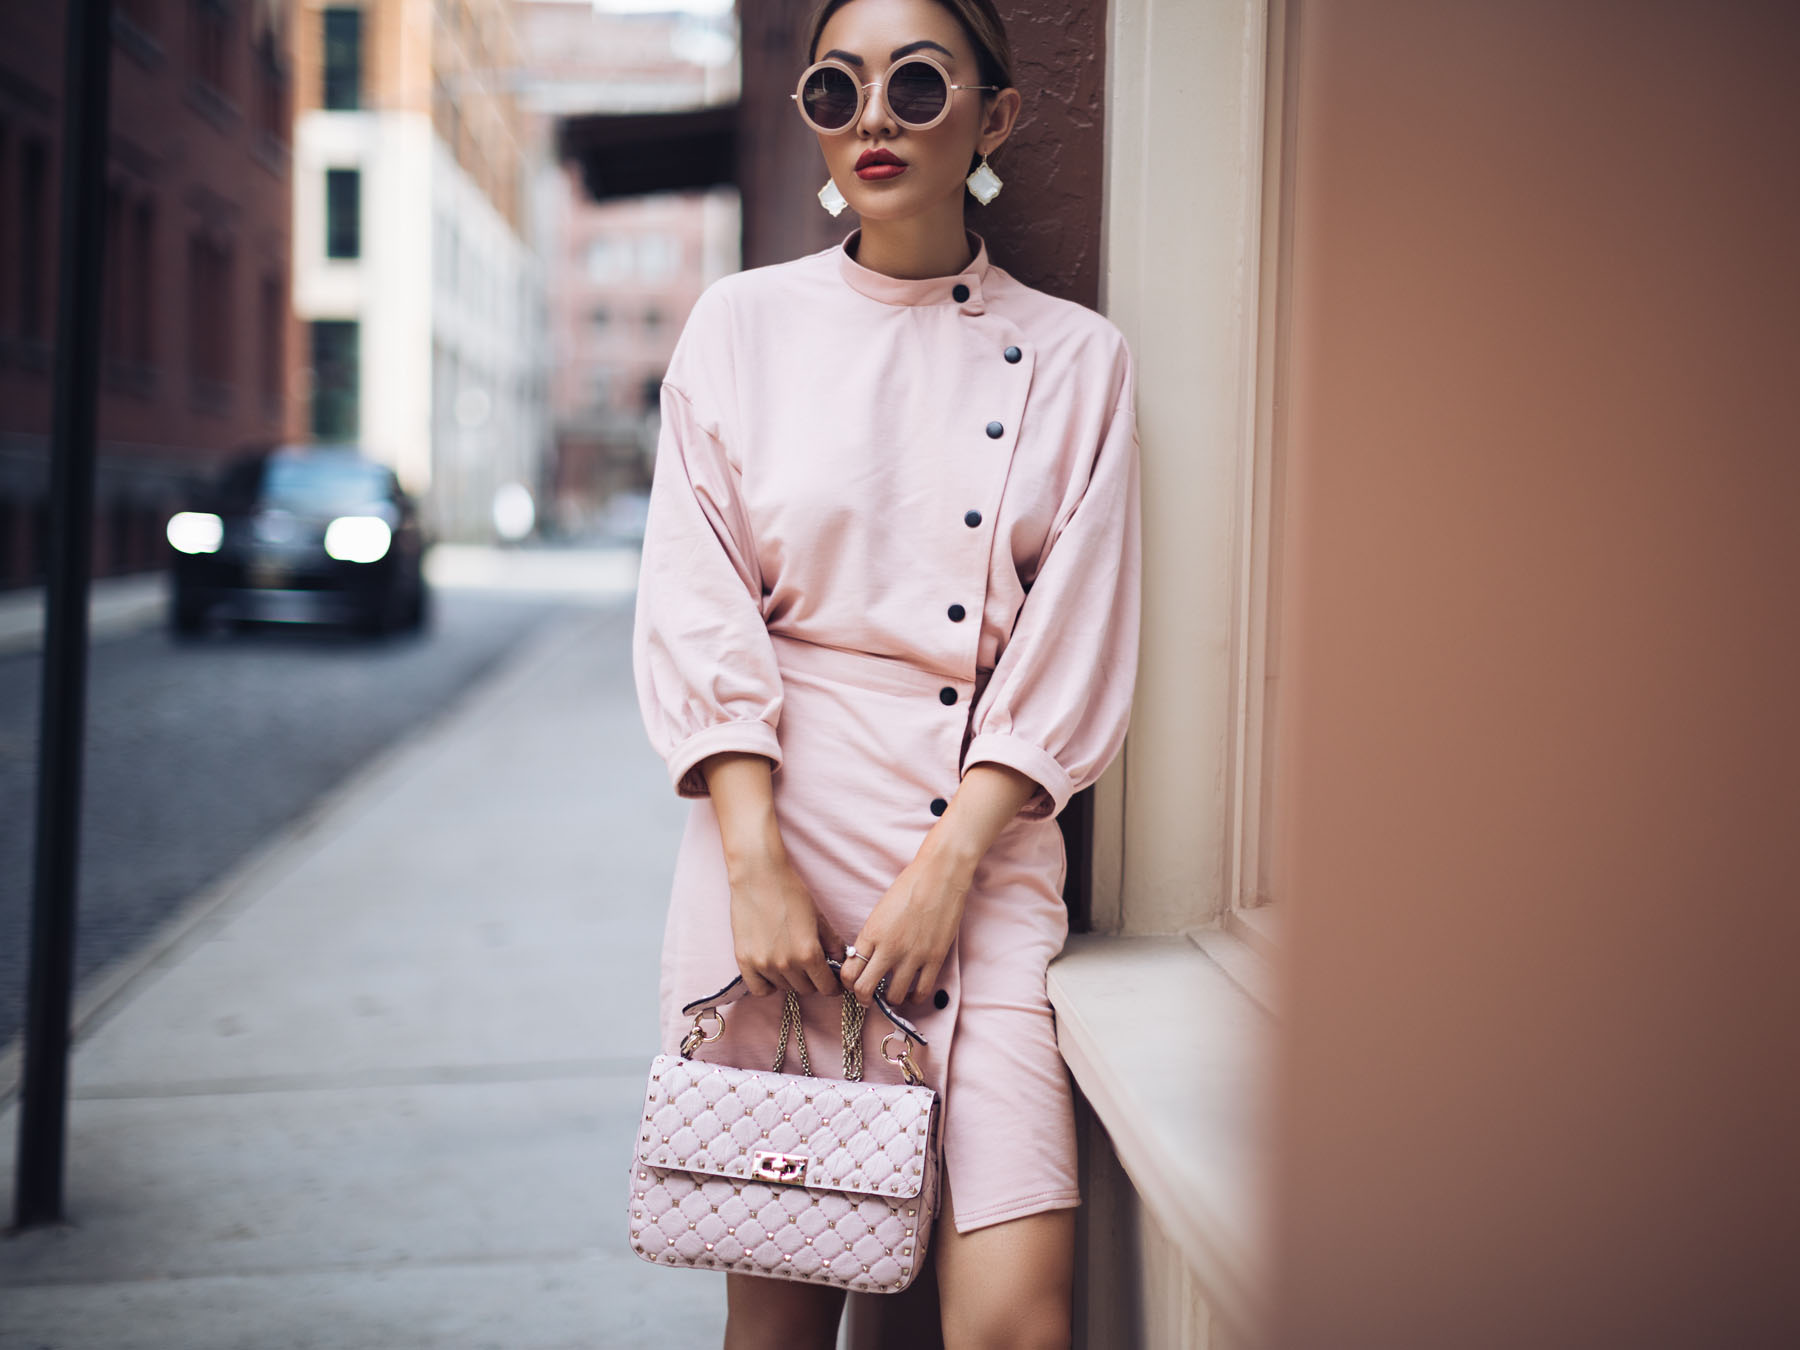 Monochromatic Winter Looks - Blush Pink Monochrome Street Style // NotJessFashion.com